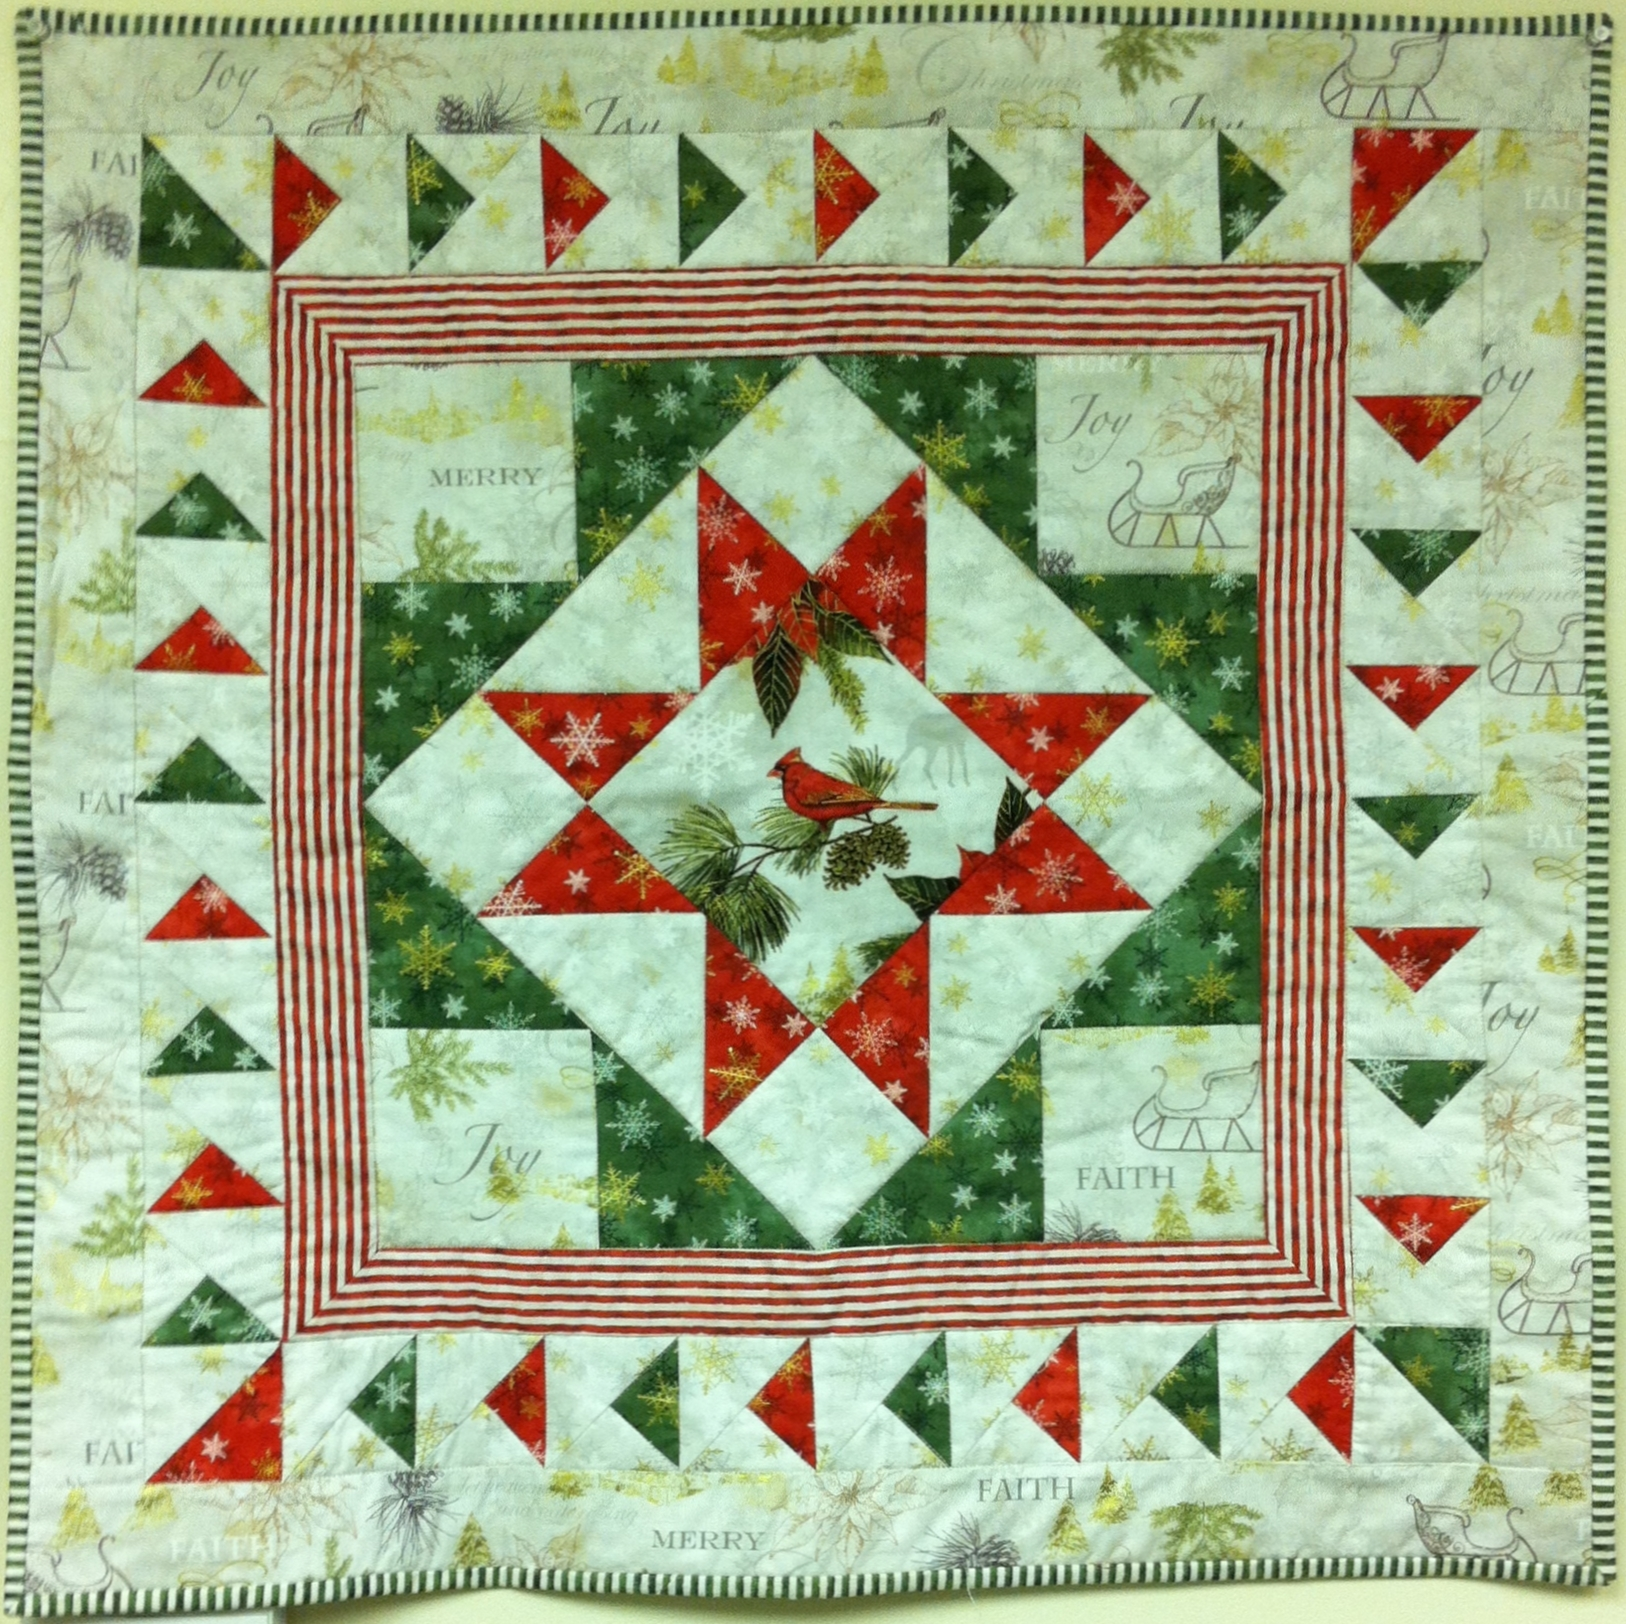 Holiday Cheer Wall Hanging (29.5 x 29.5)